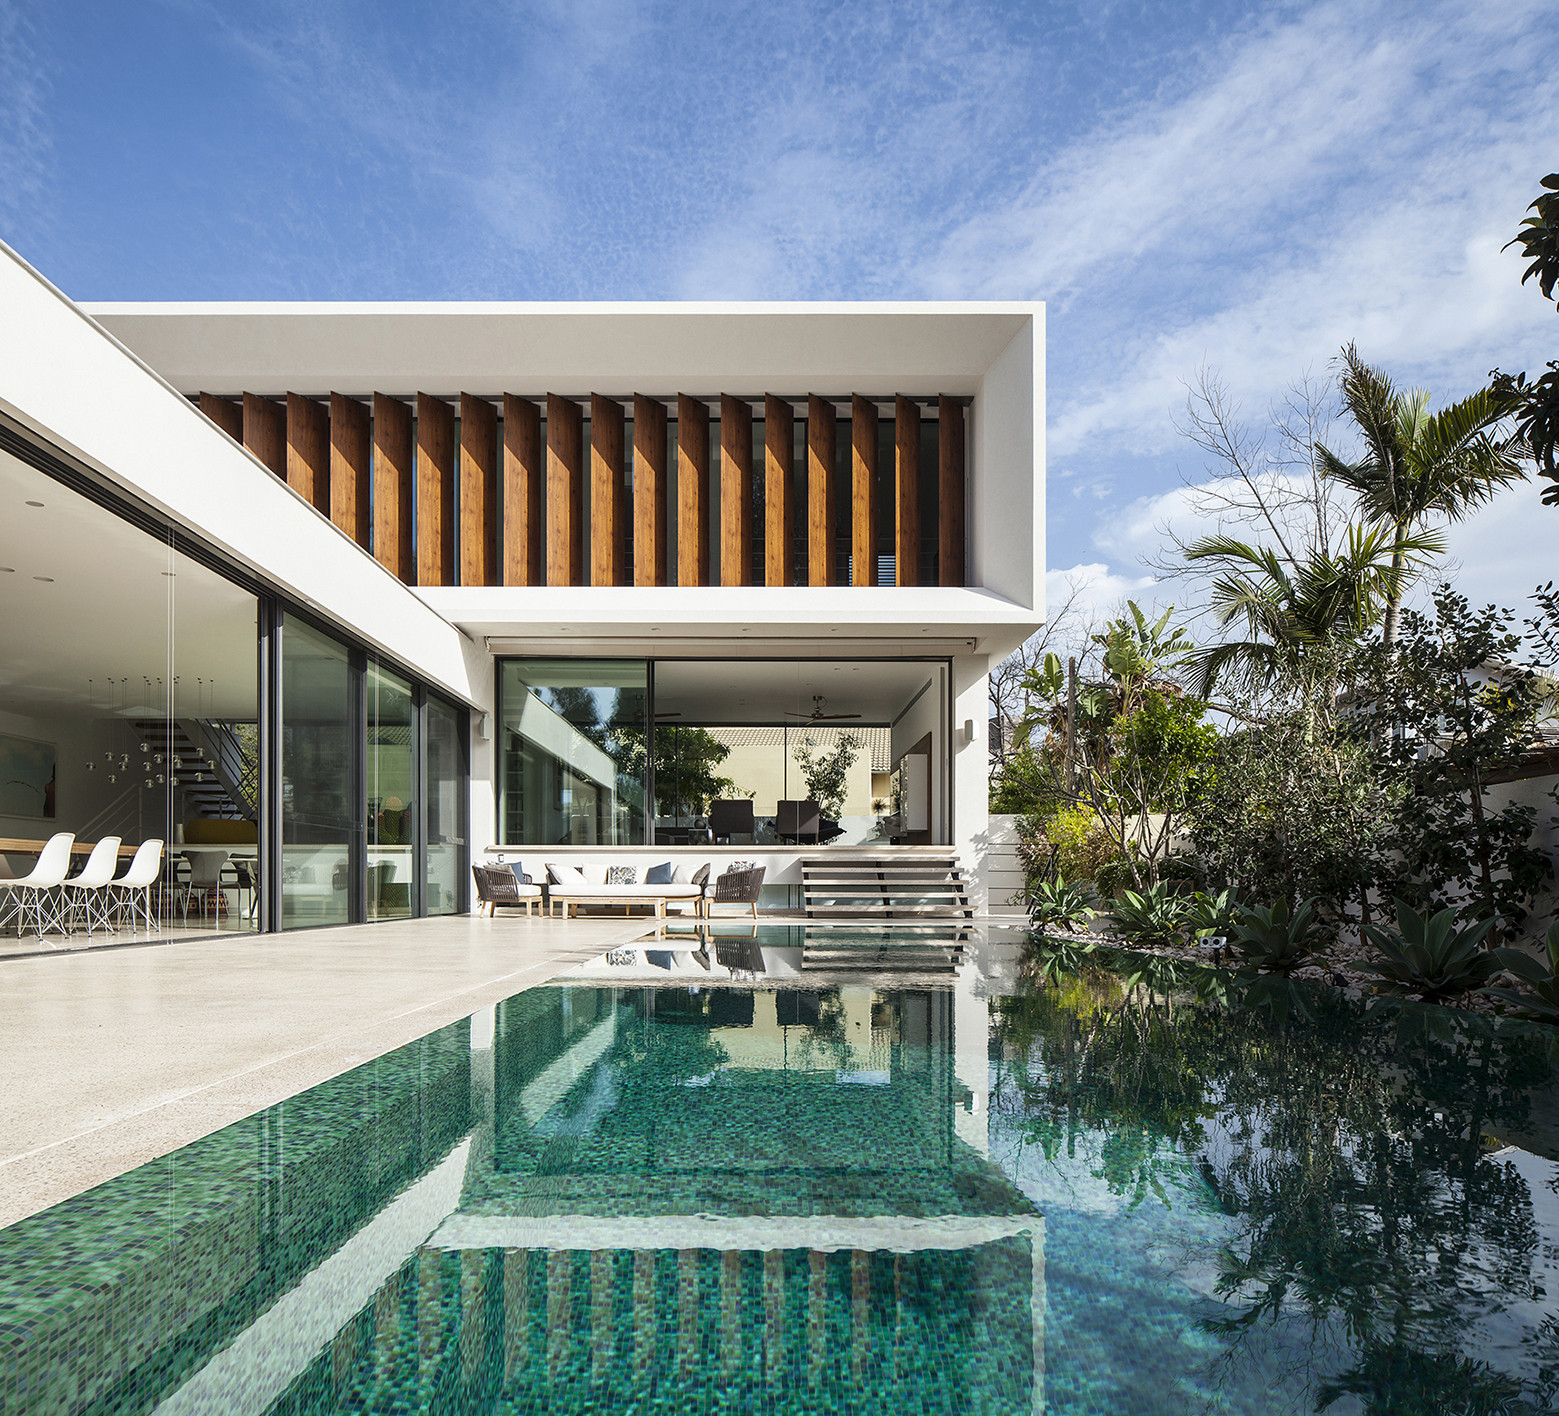 Mediterranean villa paz gersh architects archdaily for Villas modernes architecture